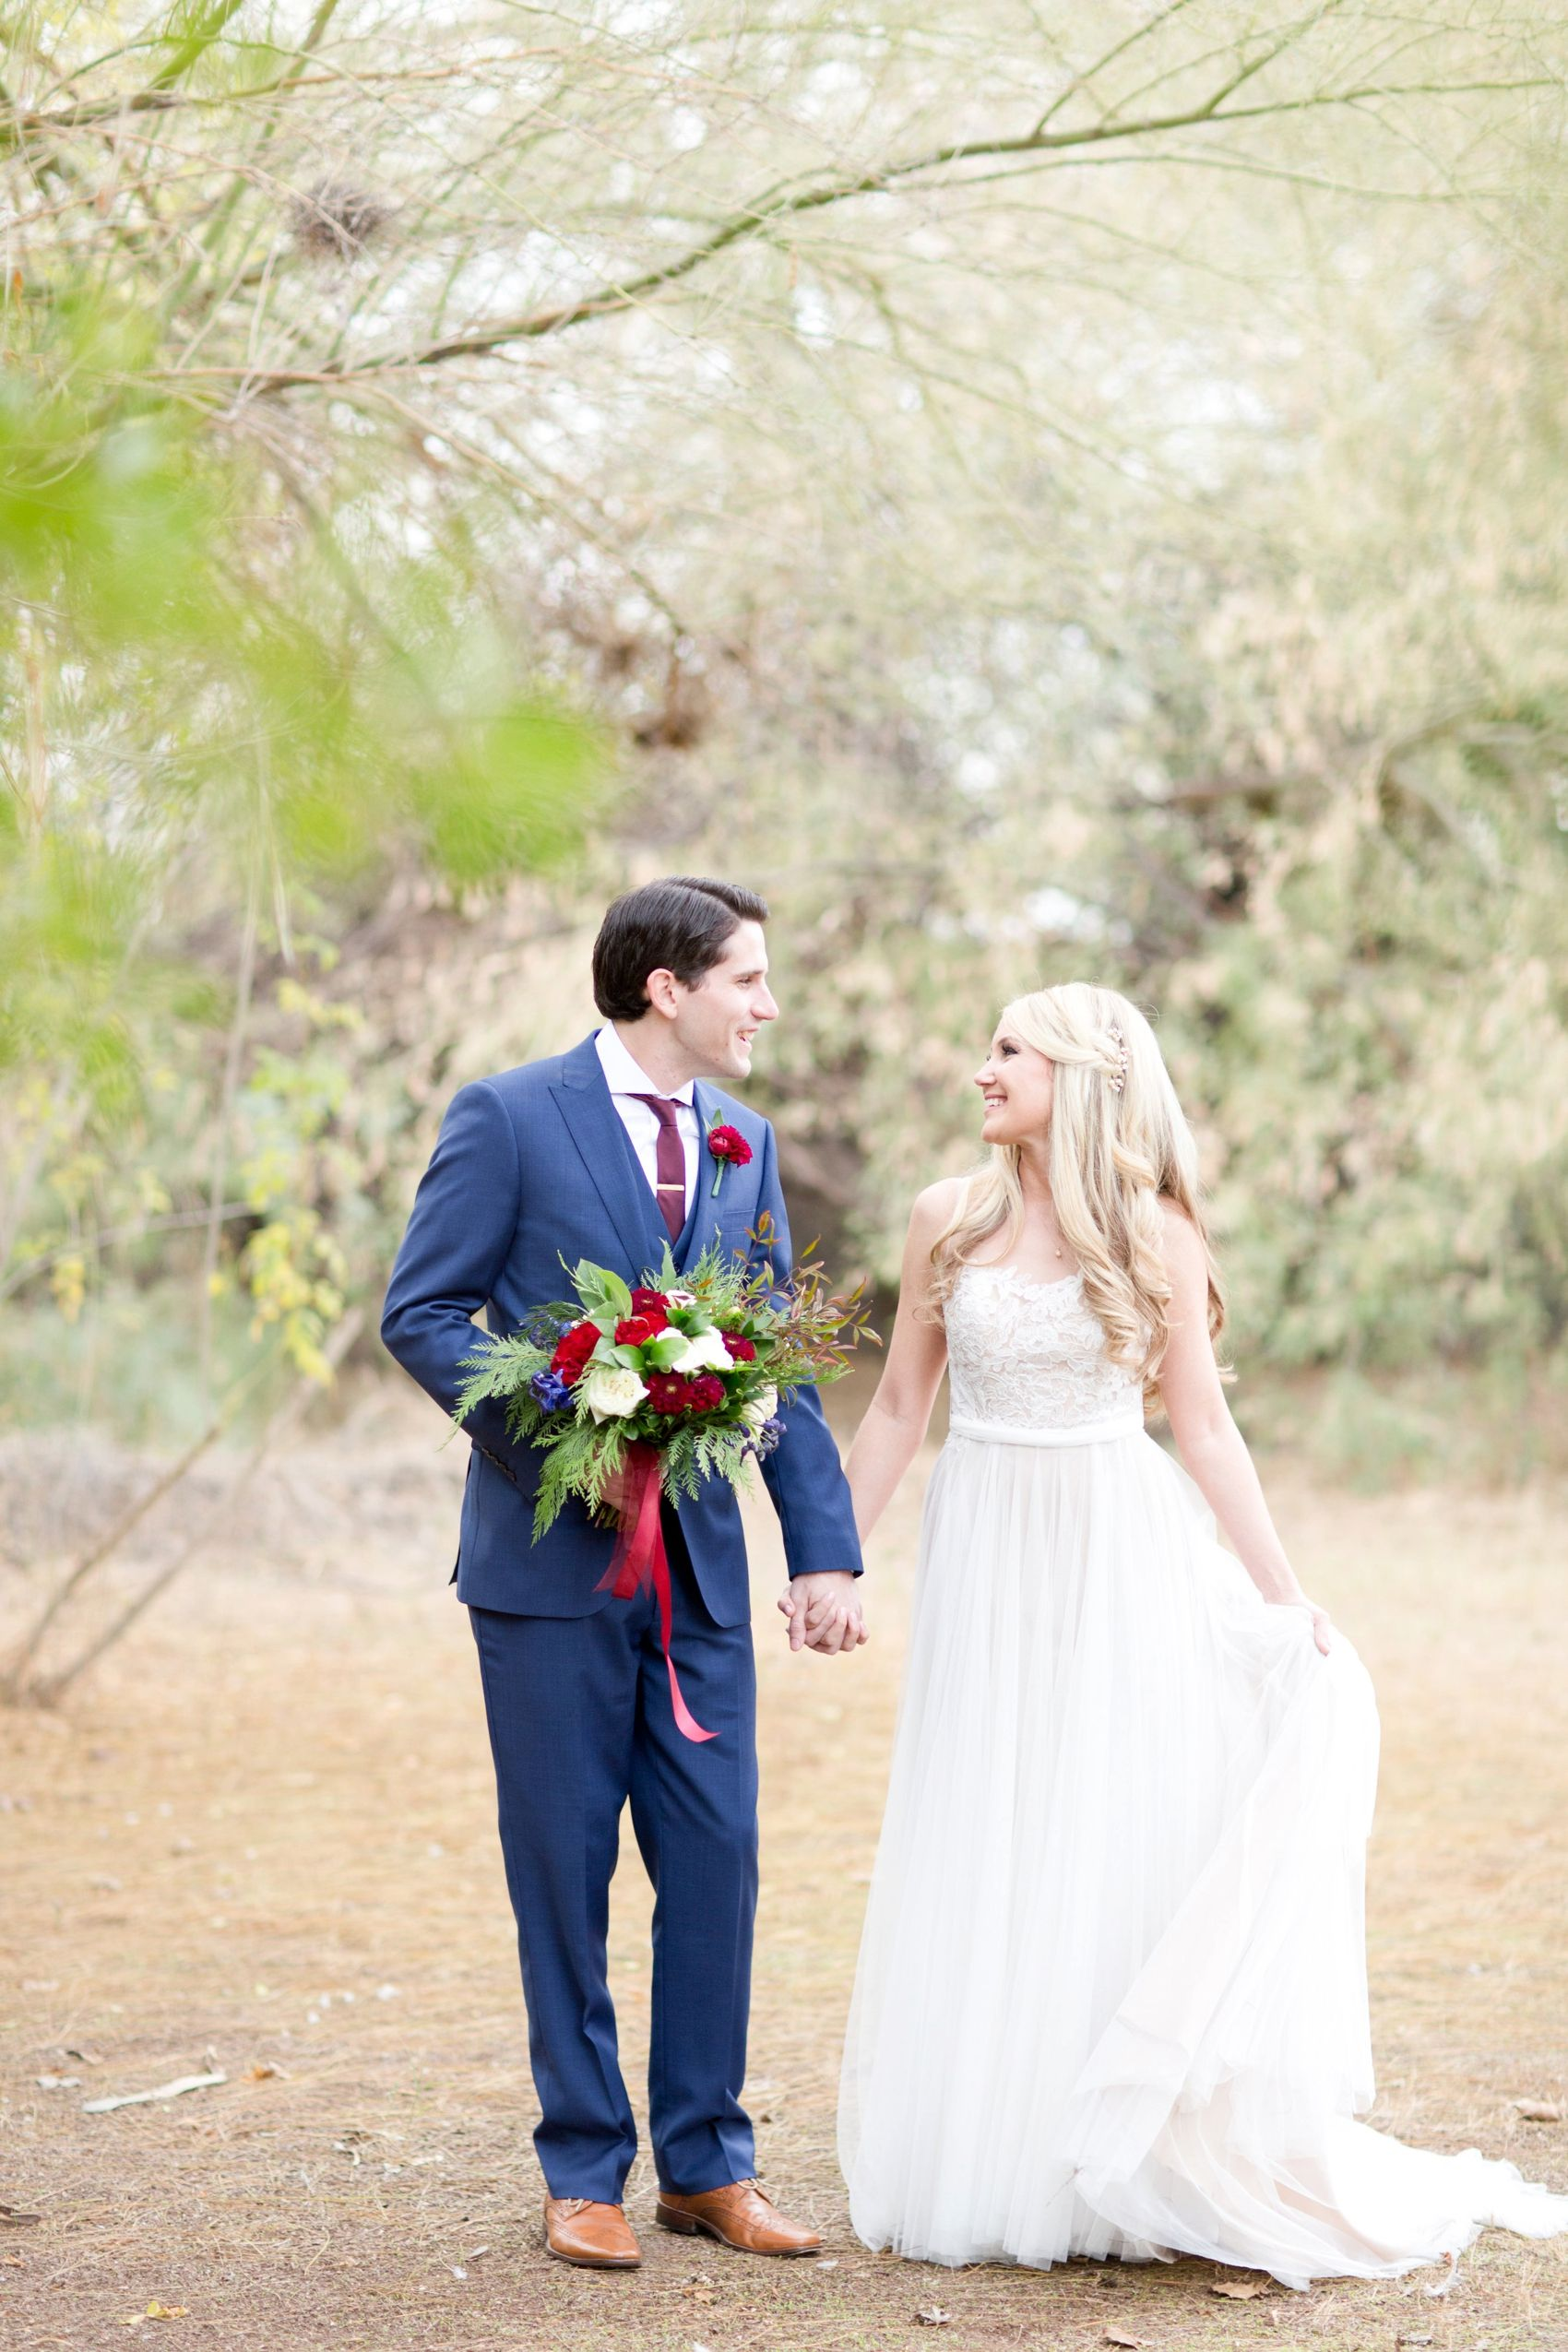 36c5c6ac9e A Secret Garden wedding in Burgundy and navy. Lace and chiffon dress tied  with a satin bow in the back. Luscious natural florals.